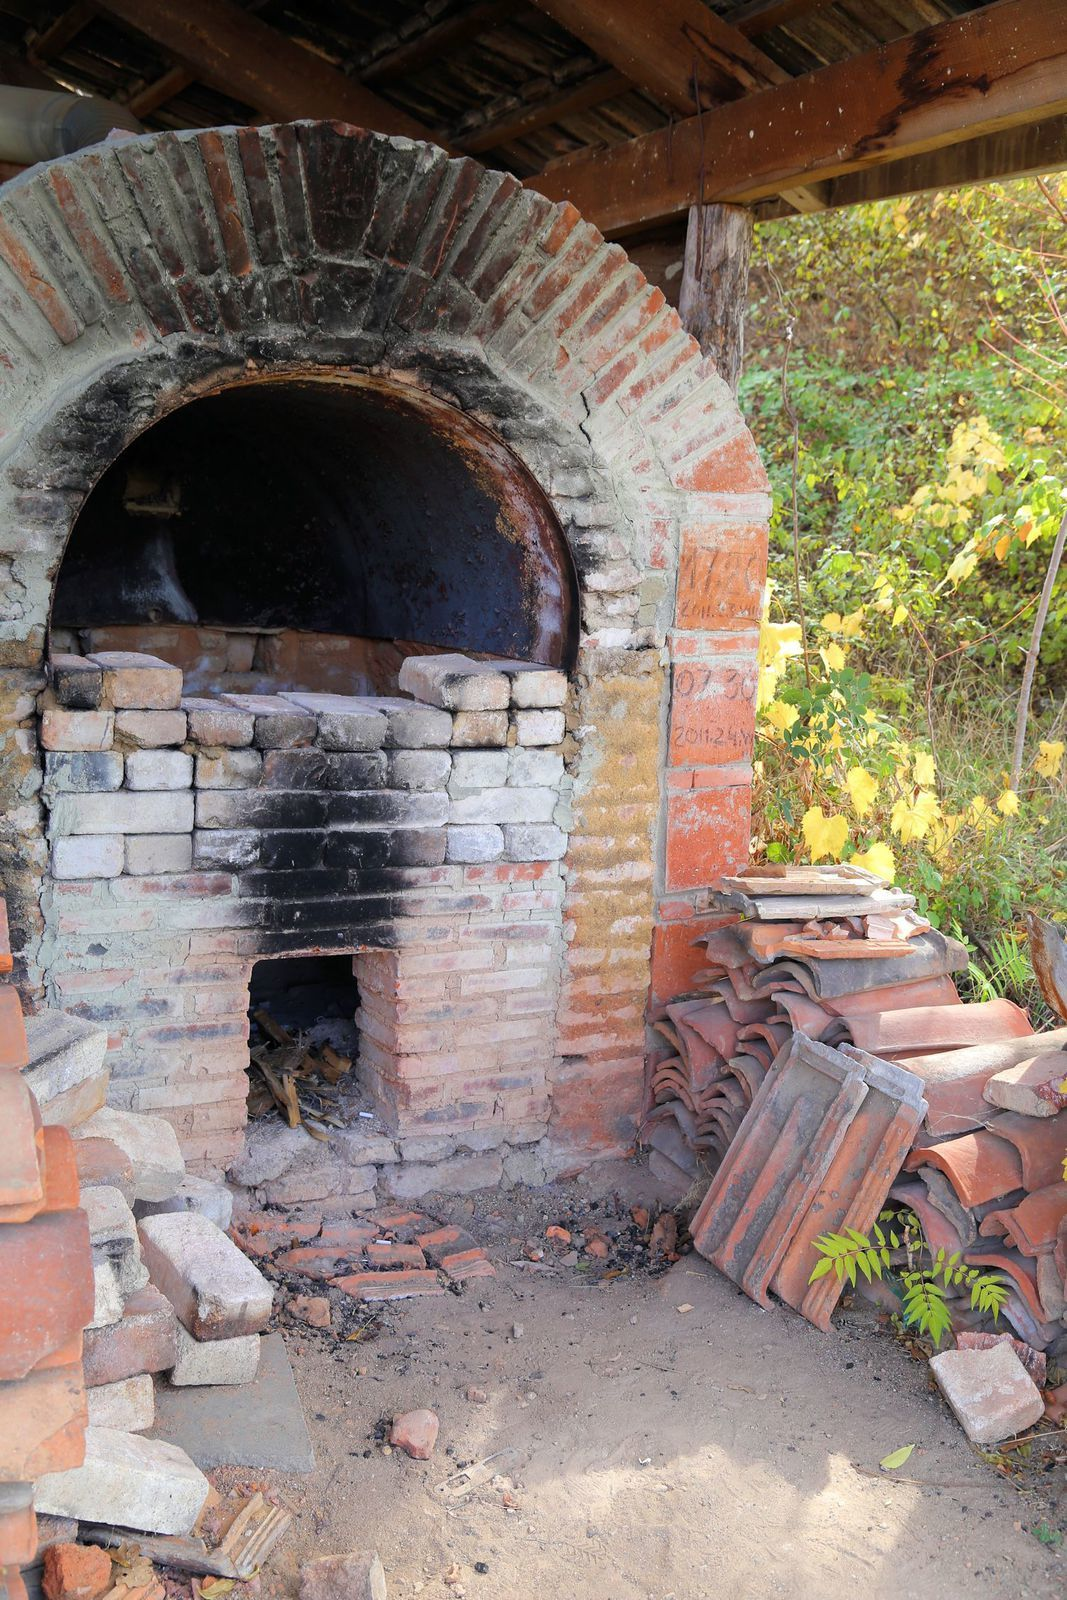 Workshops in pottery in Tbilisi Open Air Museum of Ethnography